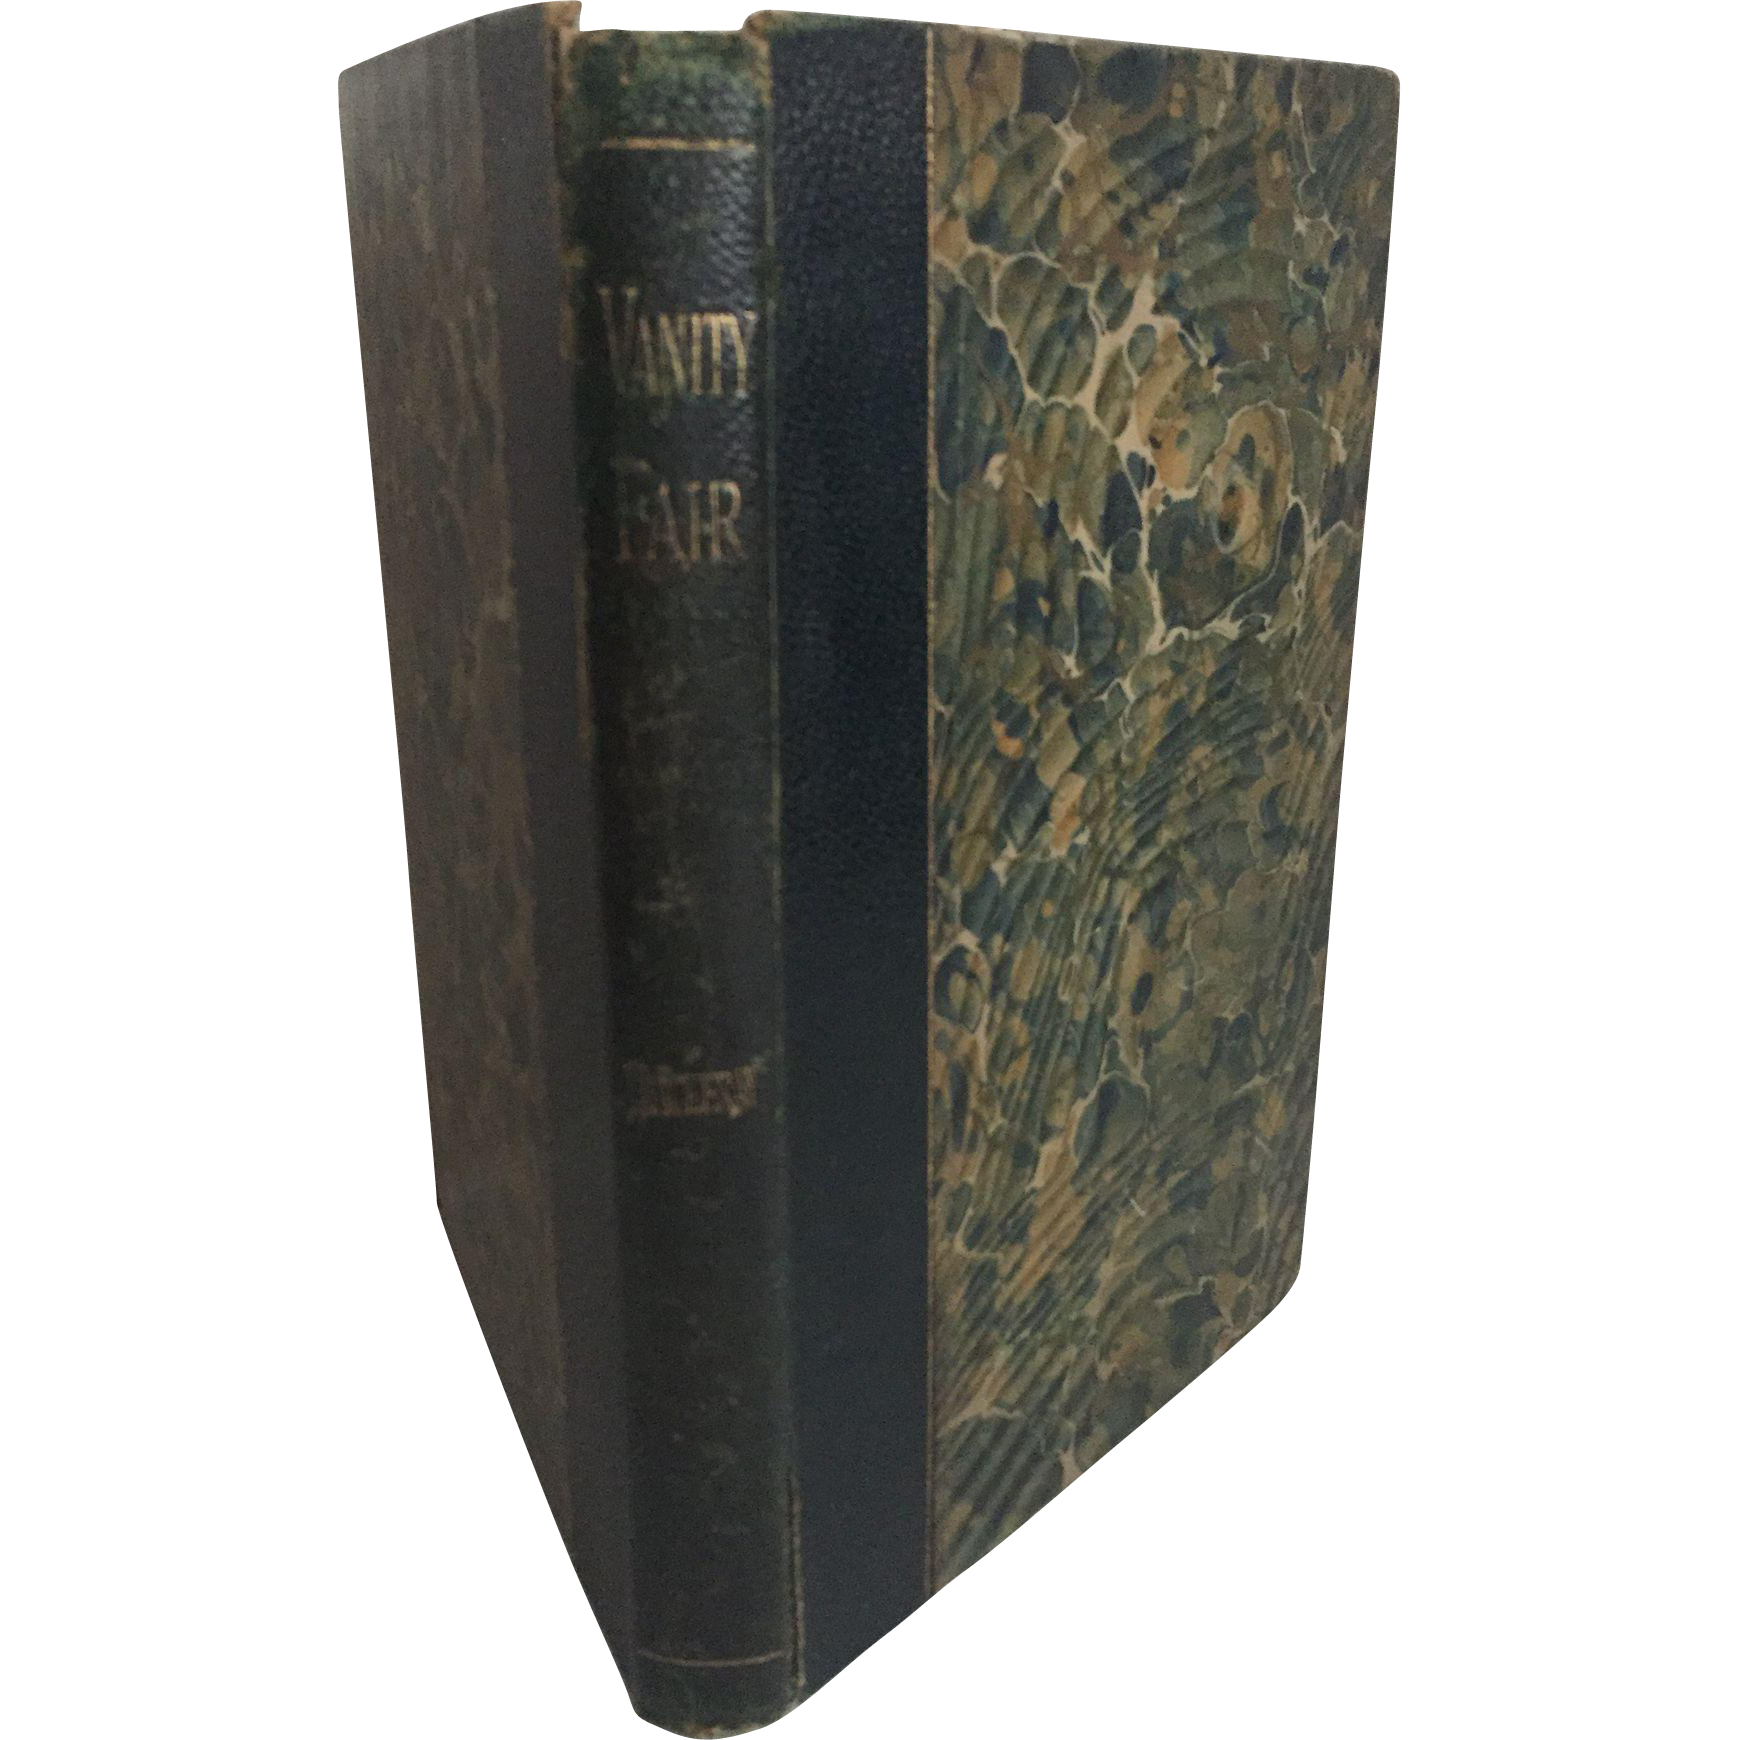 Vanity Fair: A Novel Without a Hero by William Makepeace Thackeray, Illustrated, 1890